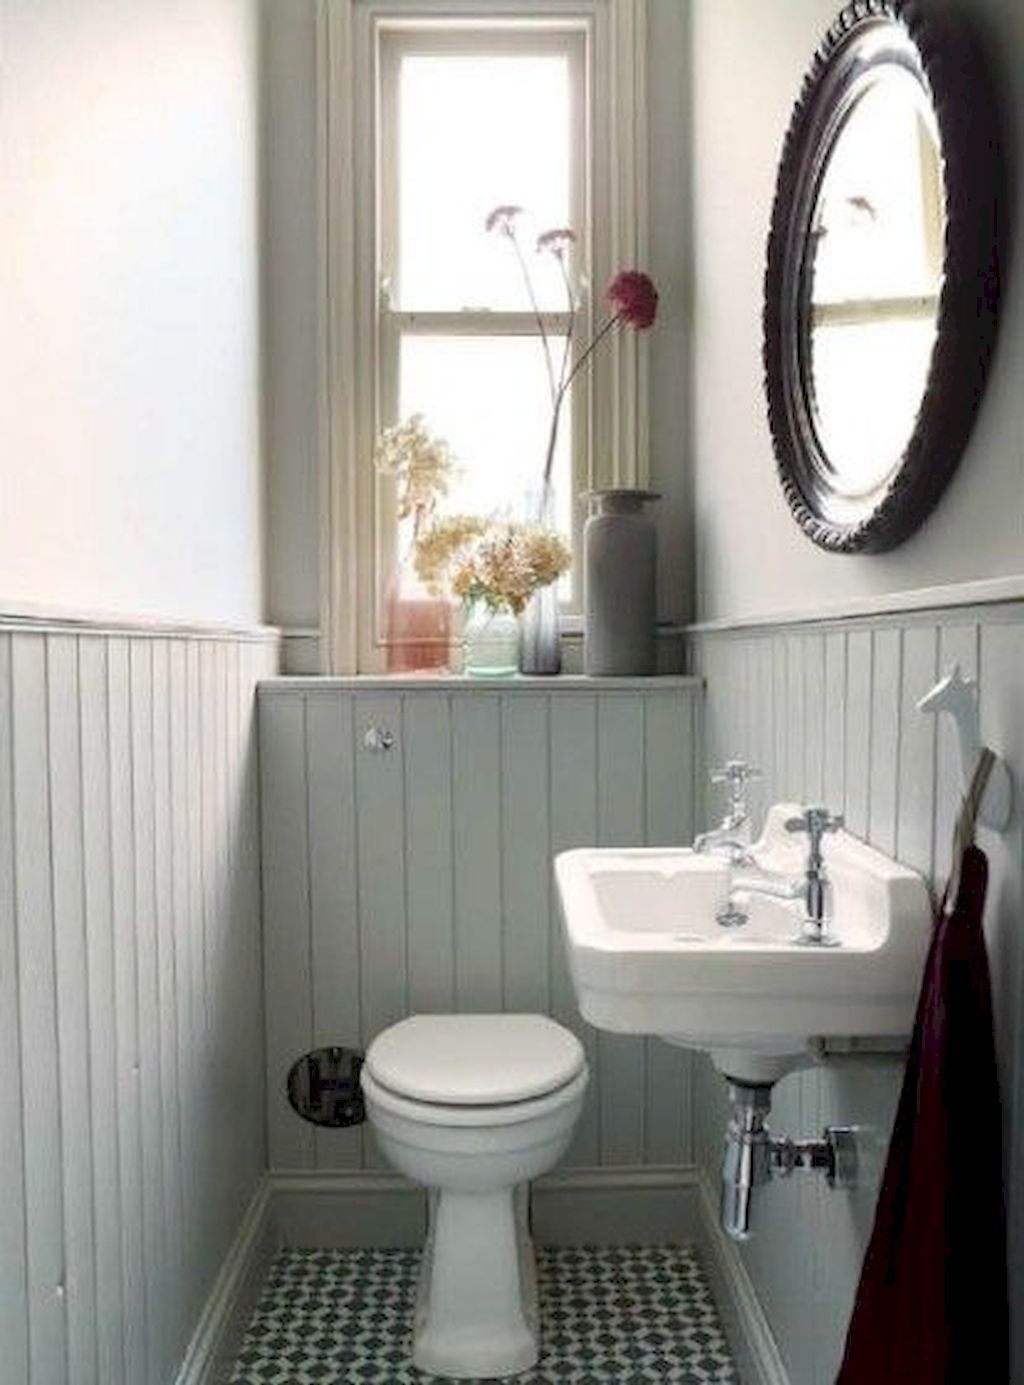 Space Saving Toilet Design For Small Bathroom Small Bathroom